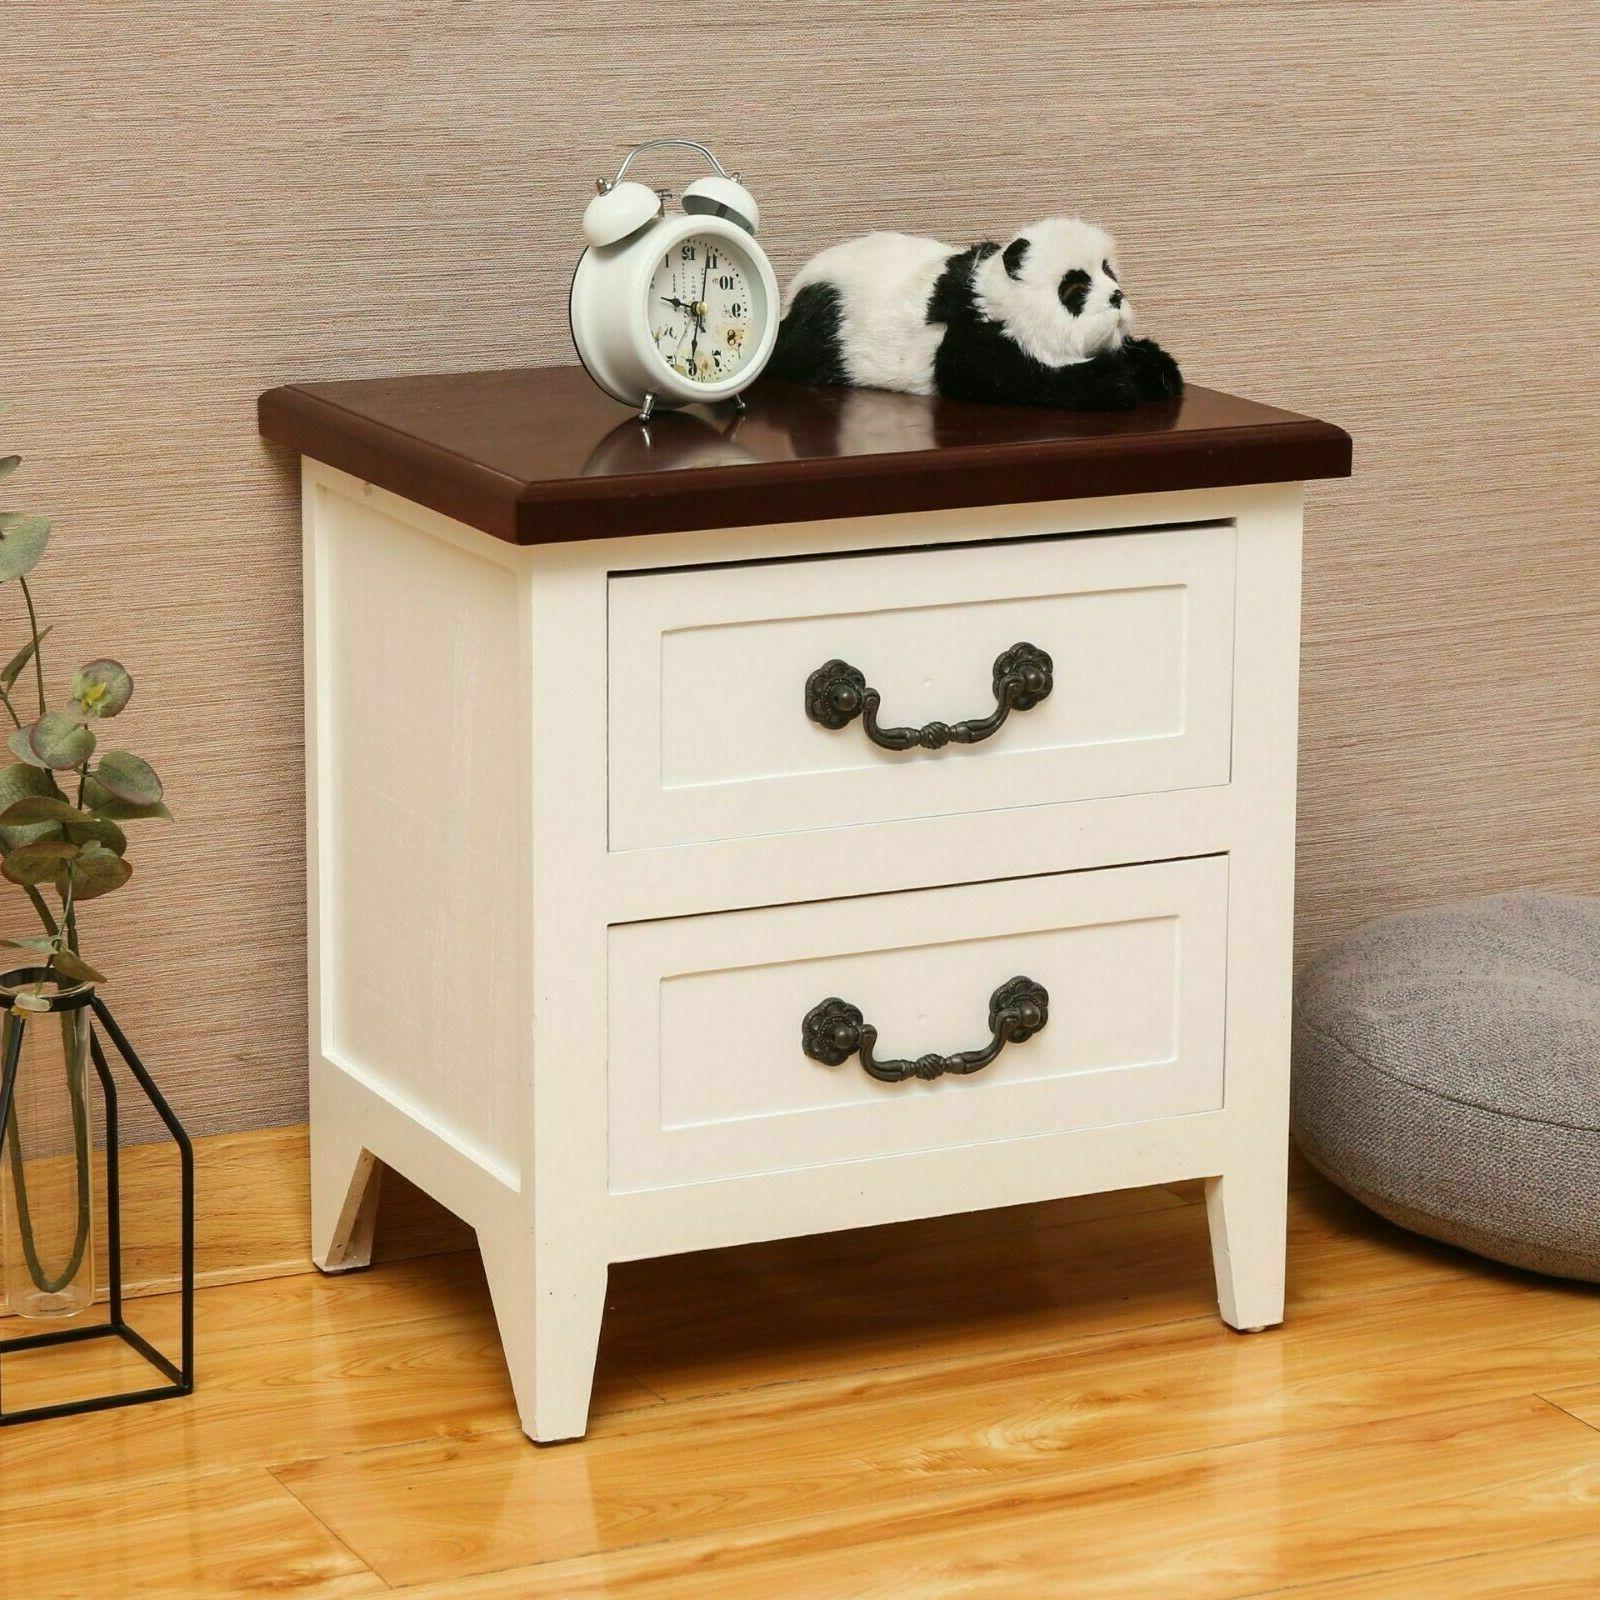 Solid Wood Set of 2 Coffee Wood Tables Nightstand Organizer